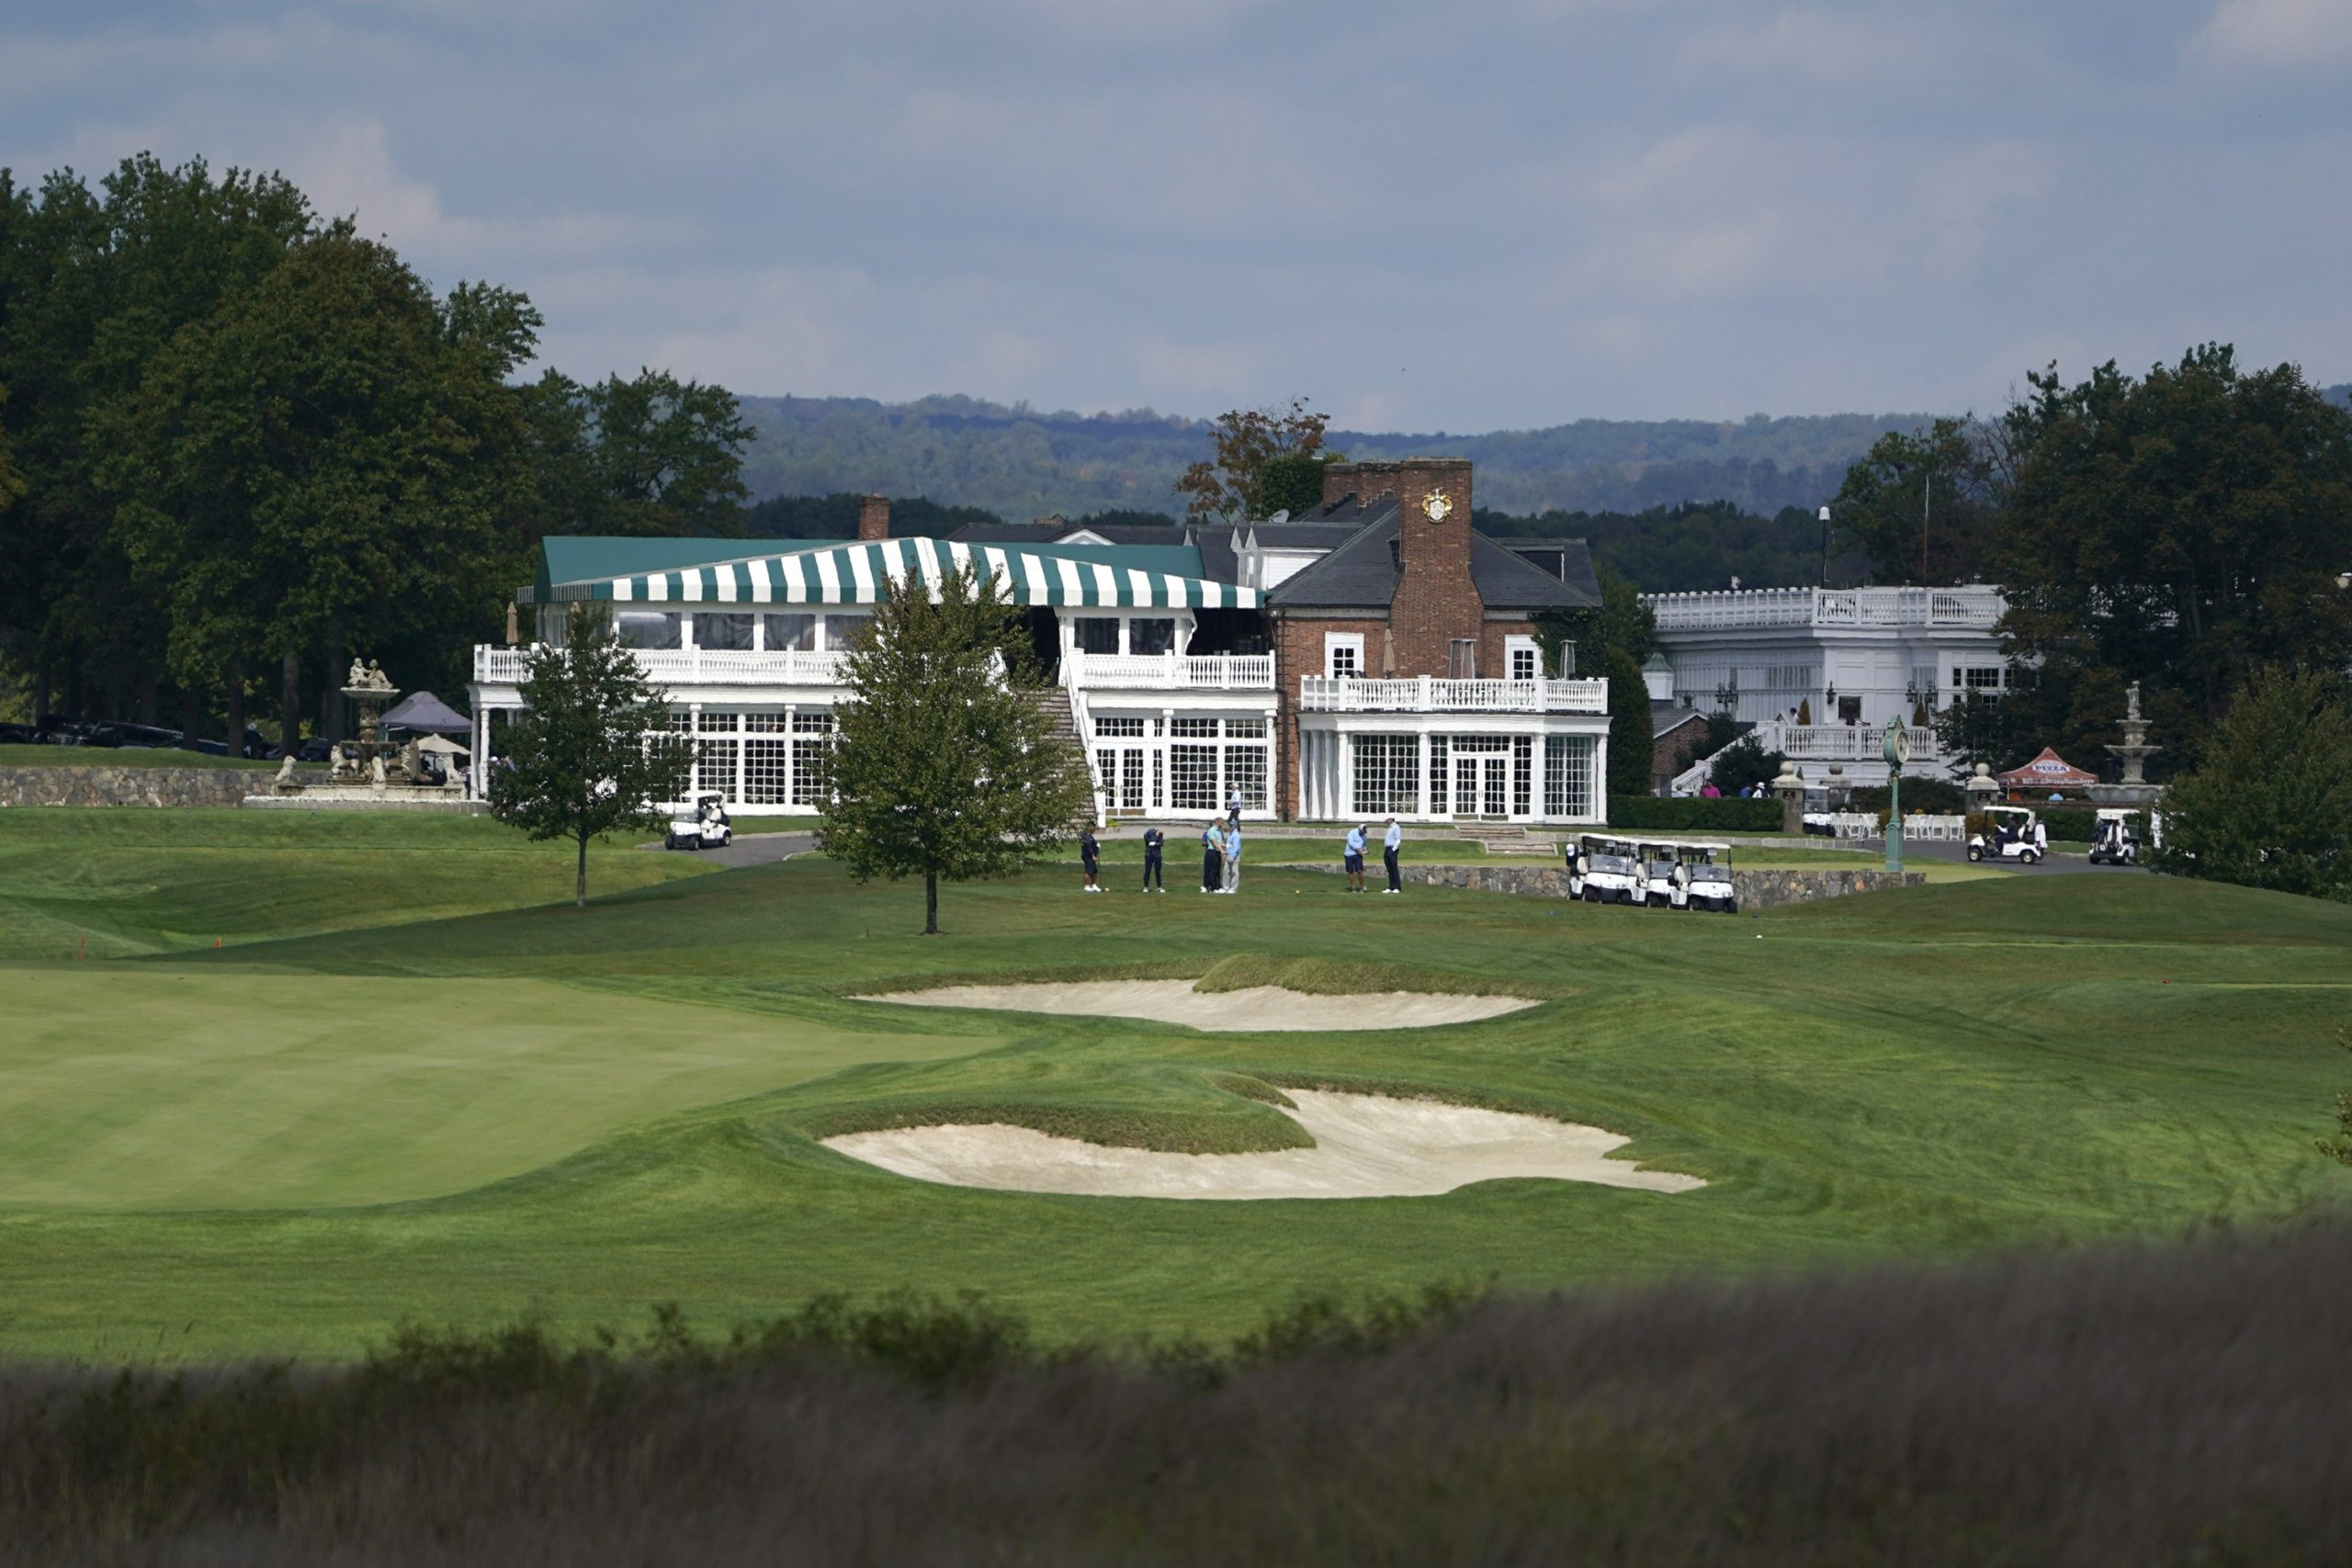 PGA Championship leaving Trump National in '22 tournament